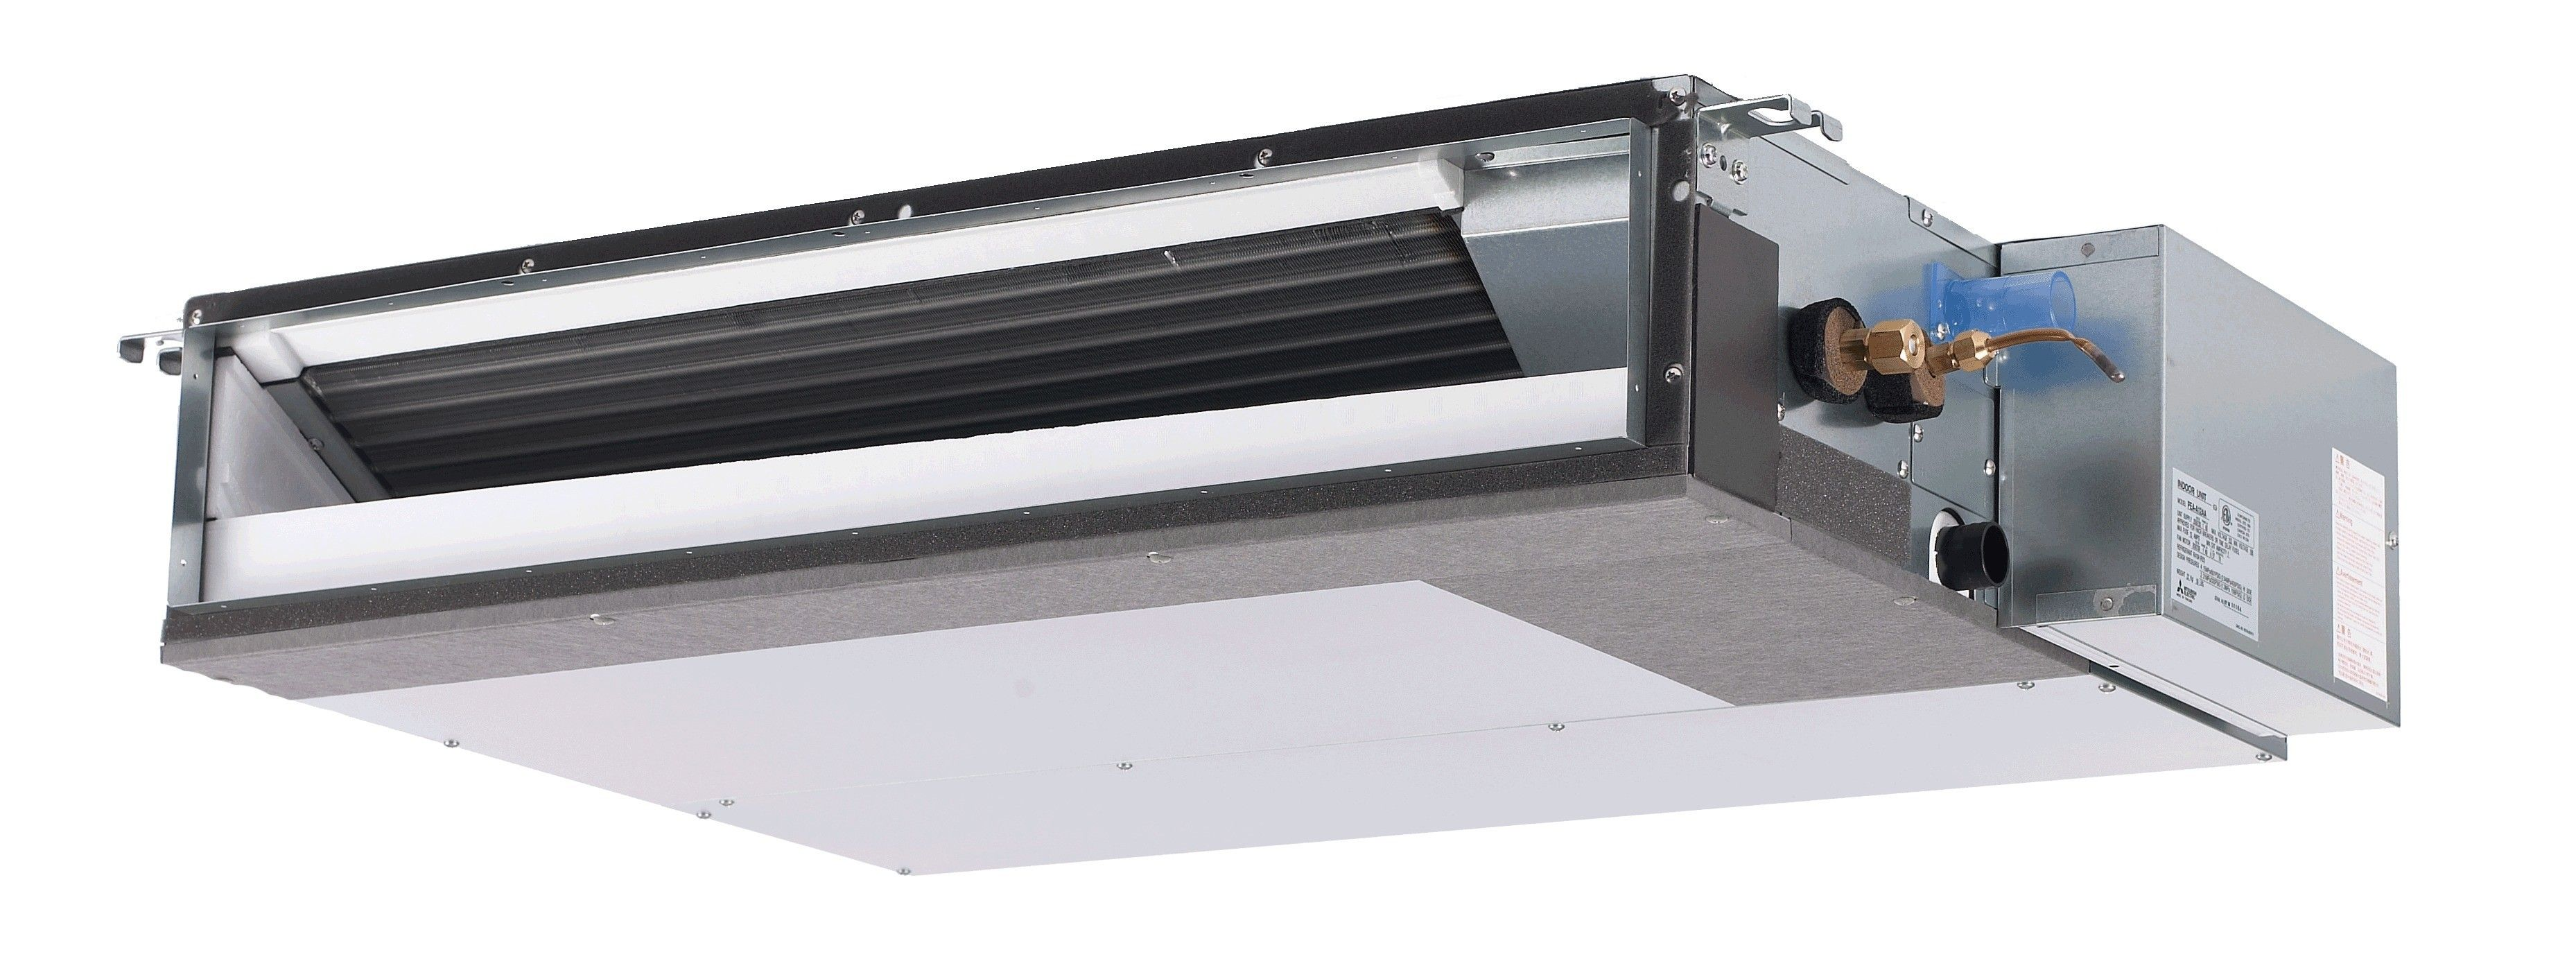 12K BTU Mitsubishi PEAD Horizontal Ducted Indoor Unit